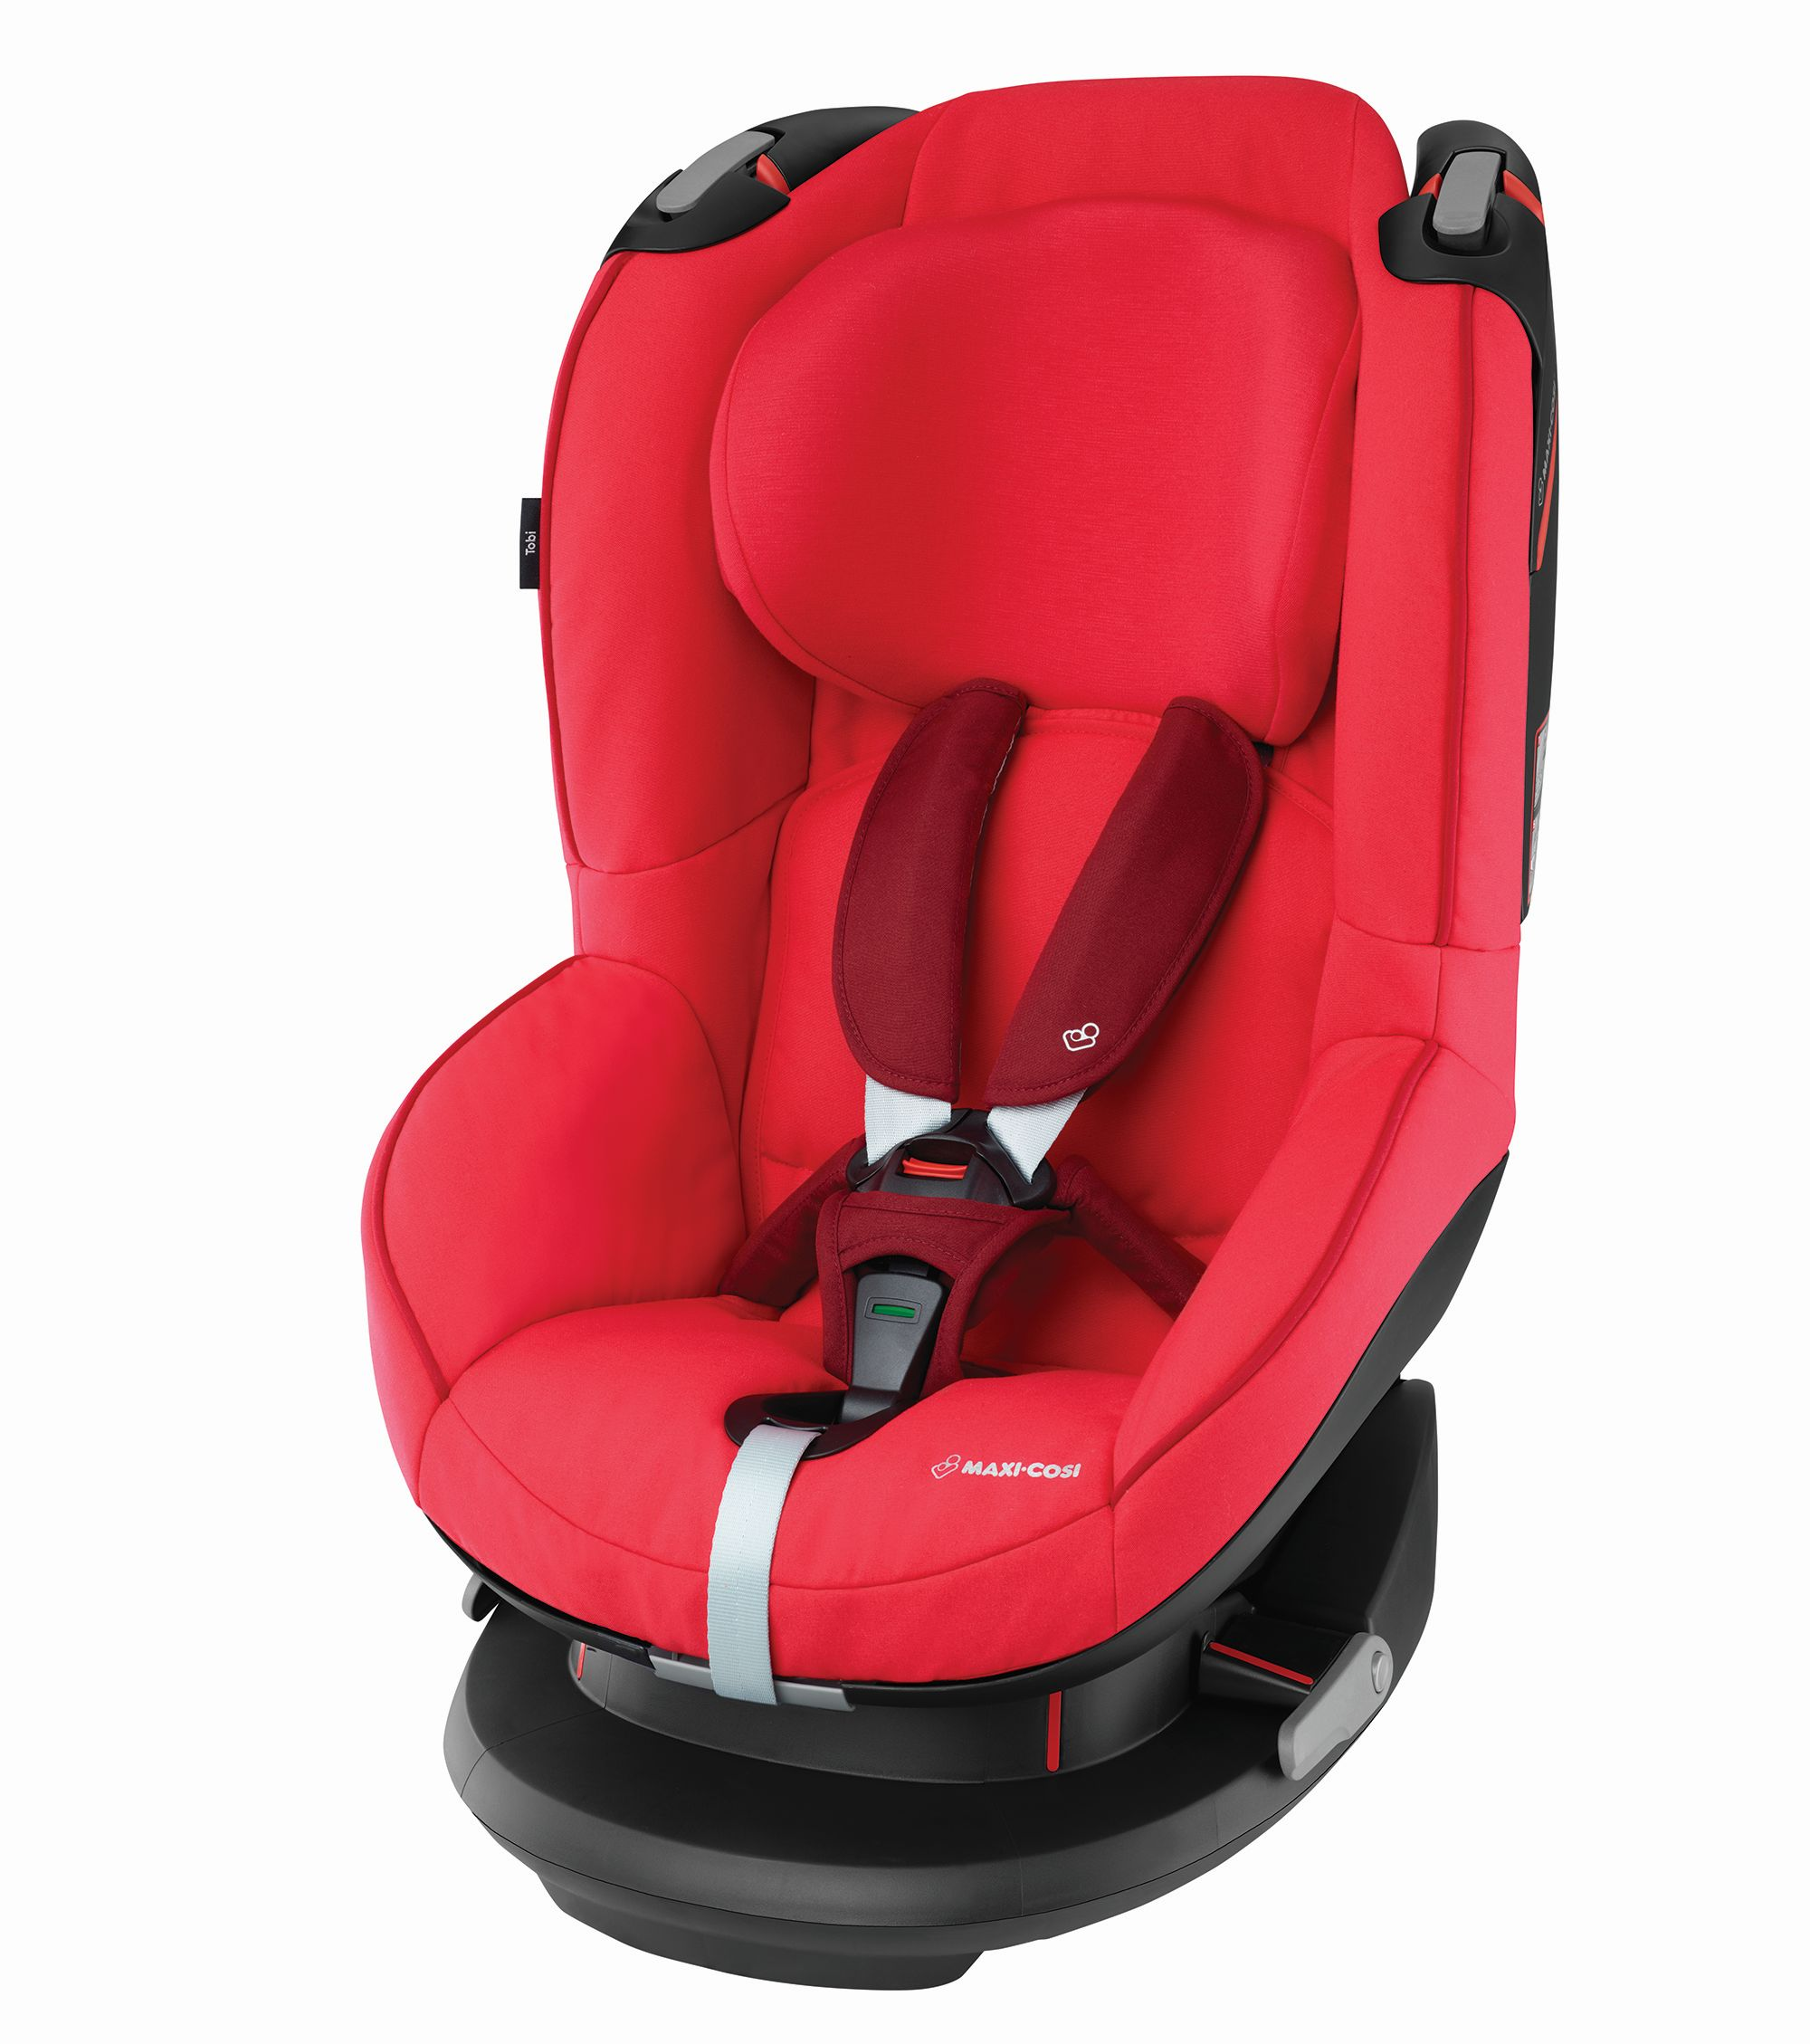 Maxi cosi child car seat tobi 2018 vivid red buy at for Maxi cosi housse